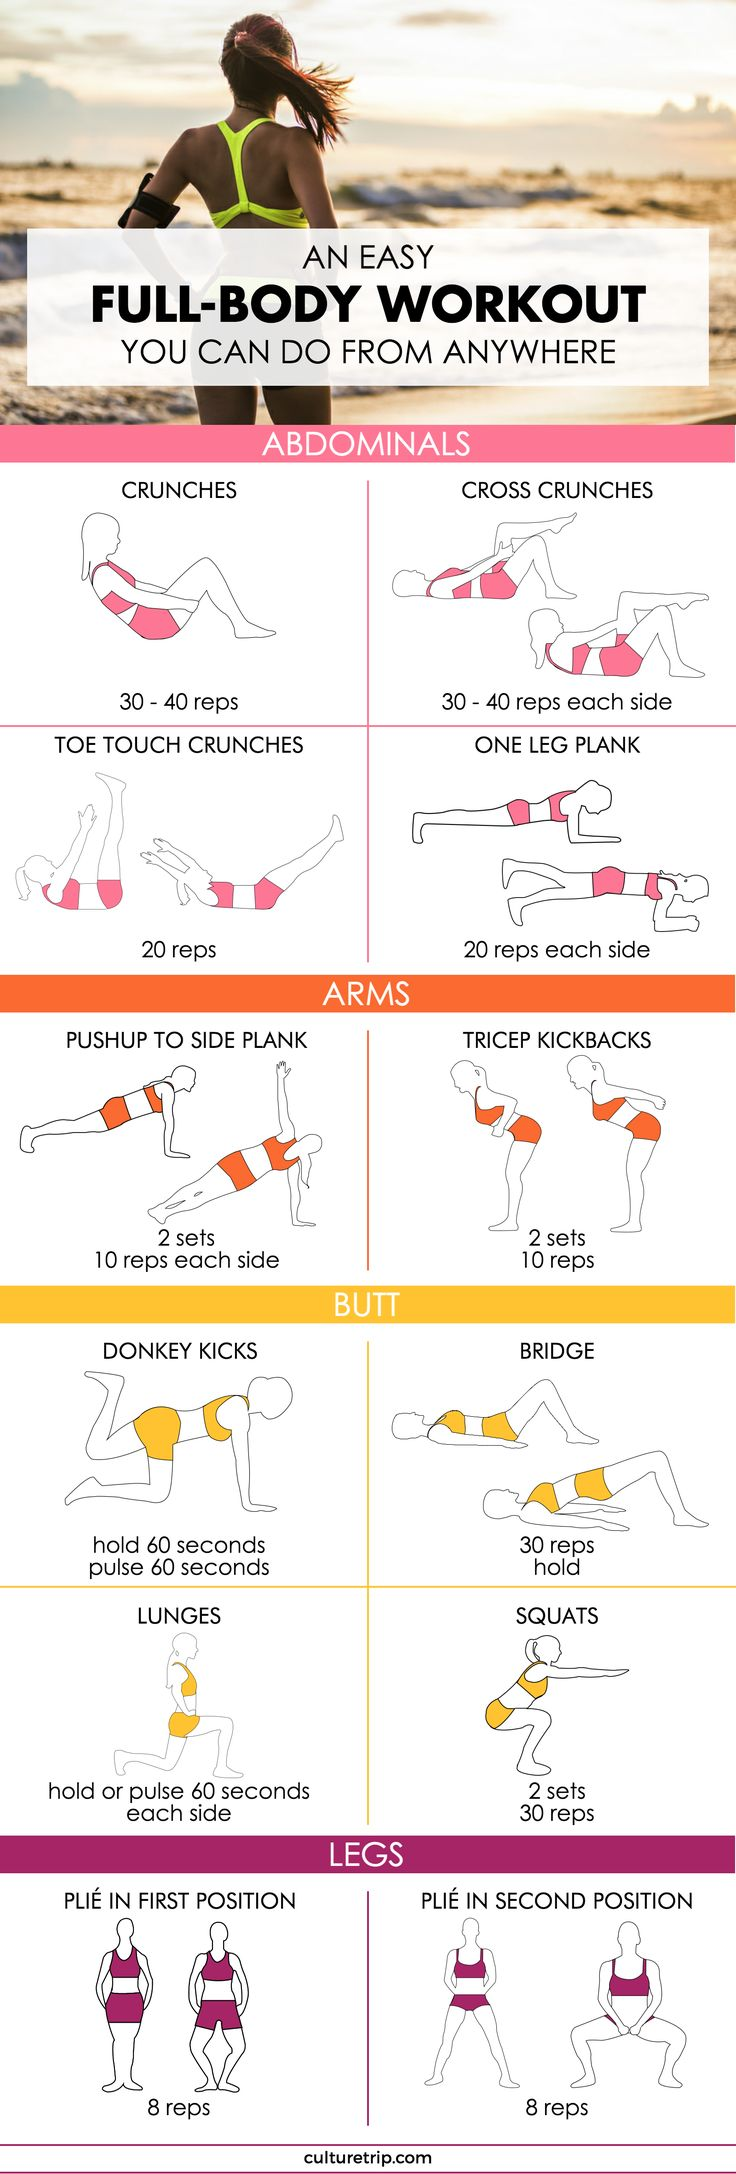 An Easy Full-Body Workout You Can Do From Anywhere